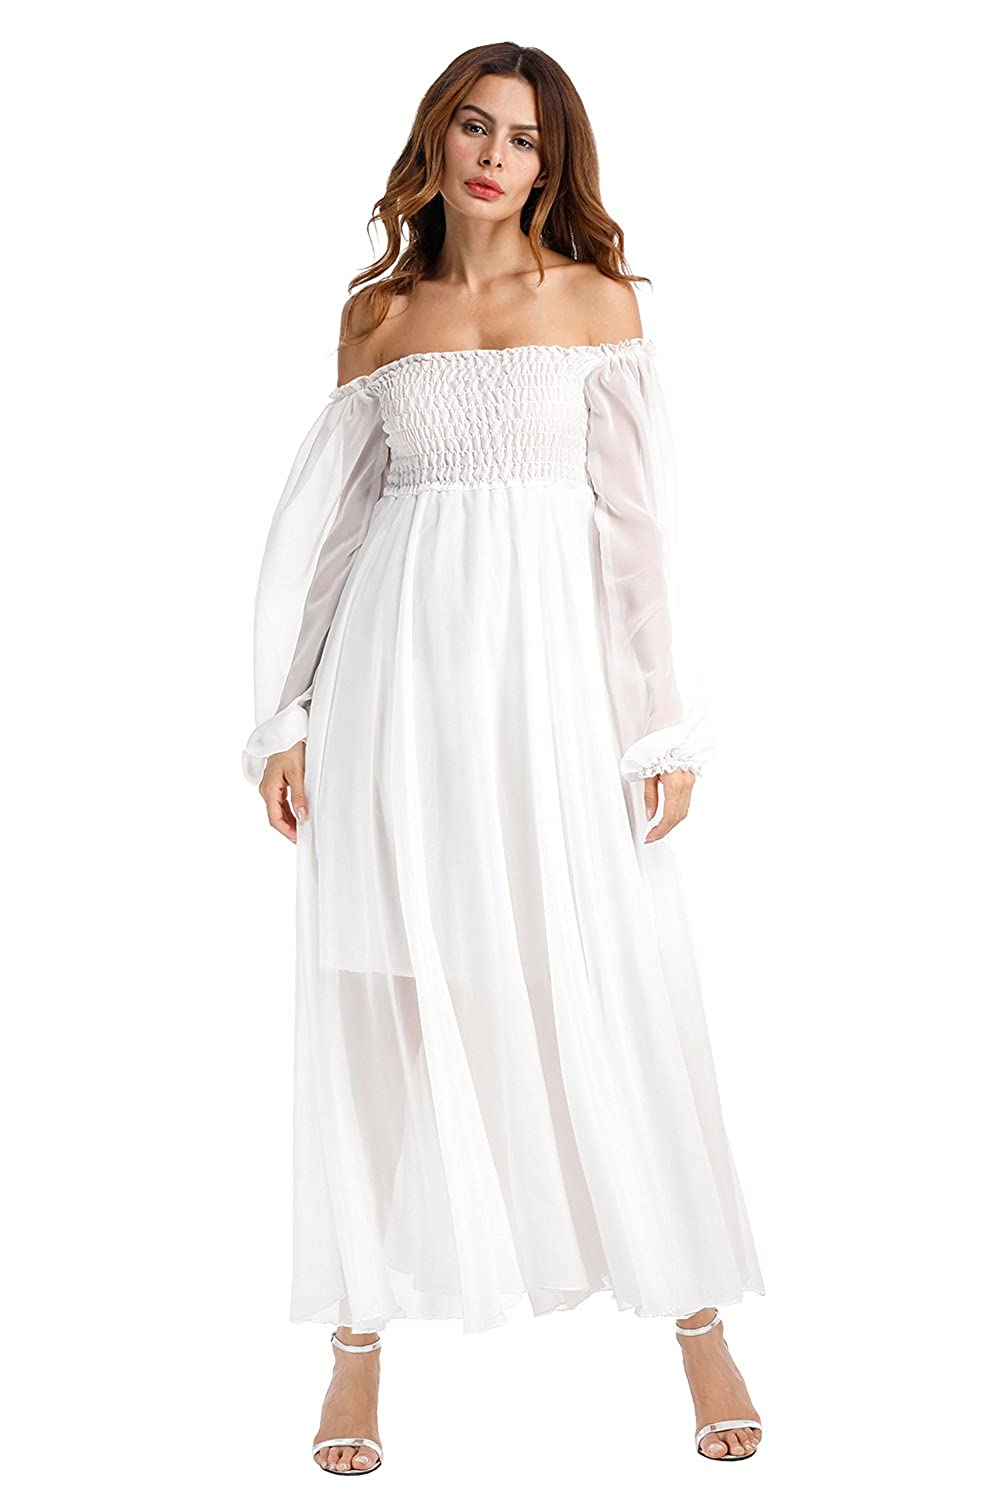 83ff9579ef Top3  Off Shoulder Dresses White Lace for Women Maxi Sexy Cocktail Formal  Evening Party Wedding Chiffon Dress Long Sleeve